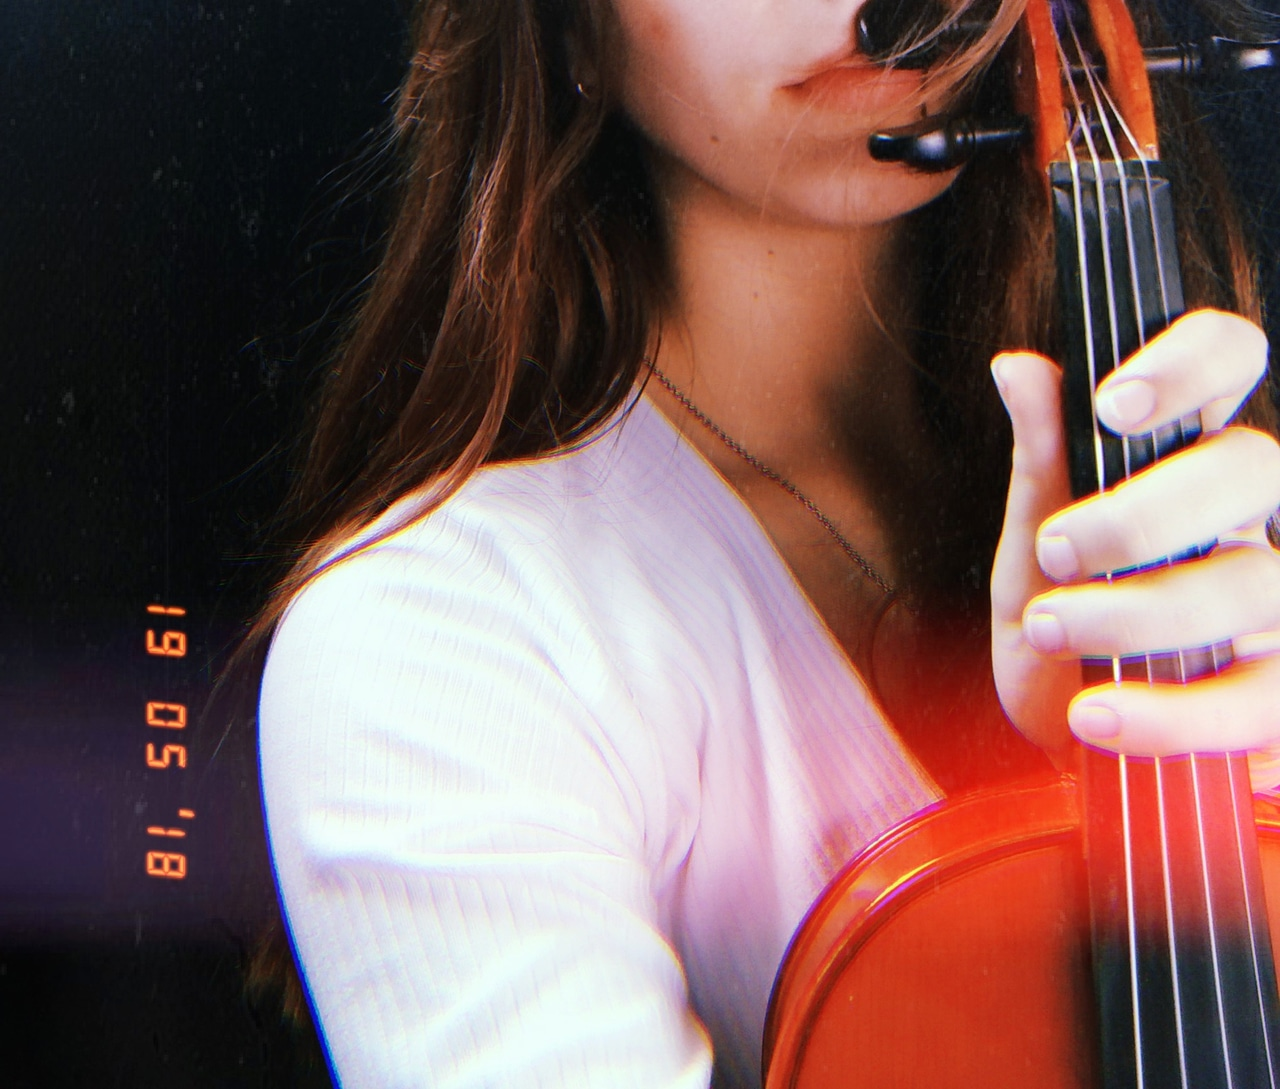 indie, classical music and violinist